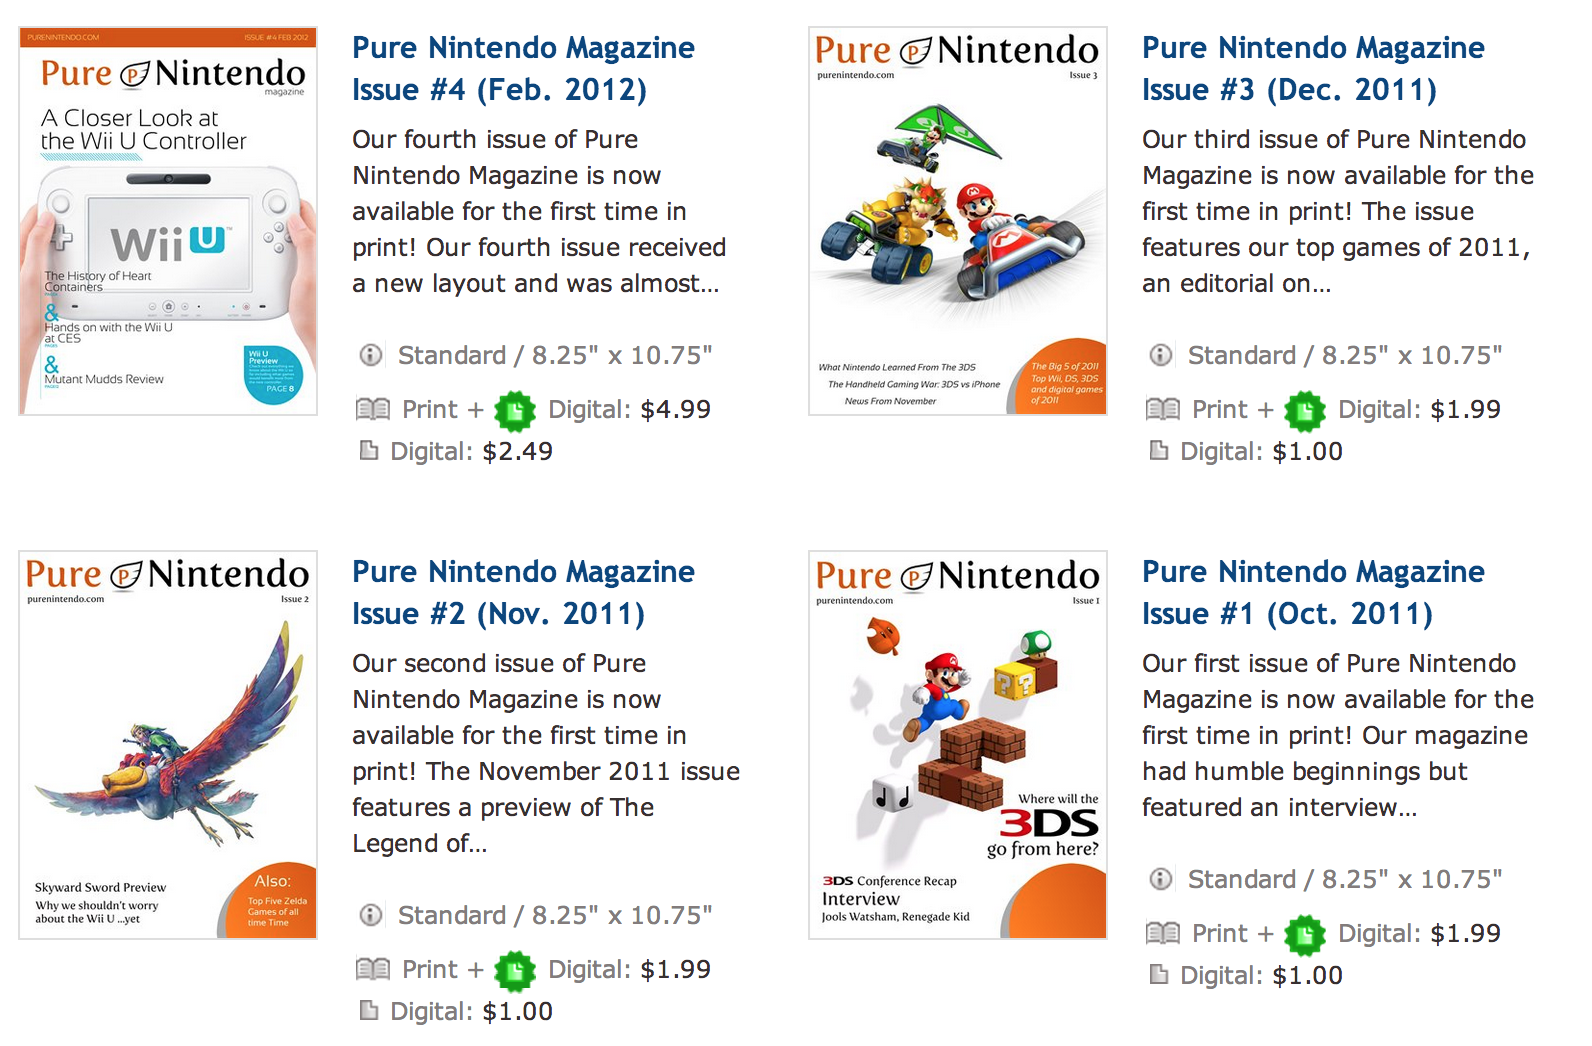 Pure Nintendo Magazine Issues 1-4 Now Available in Print